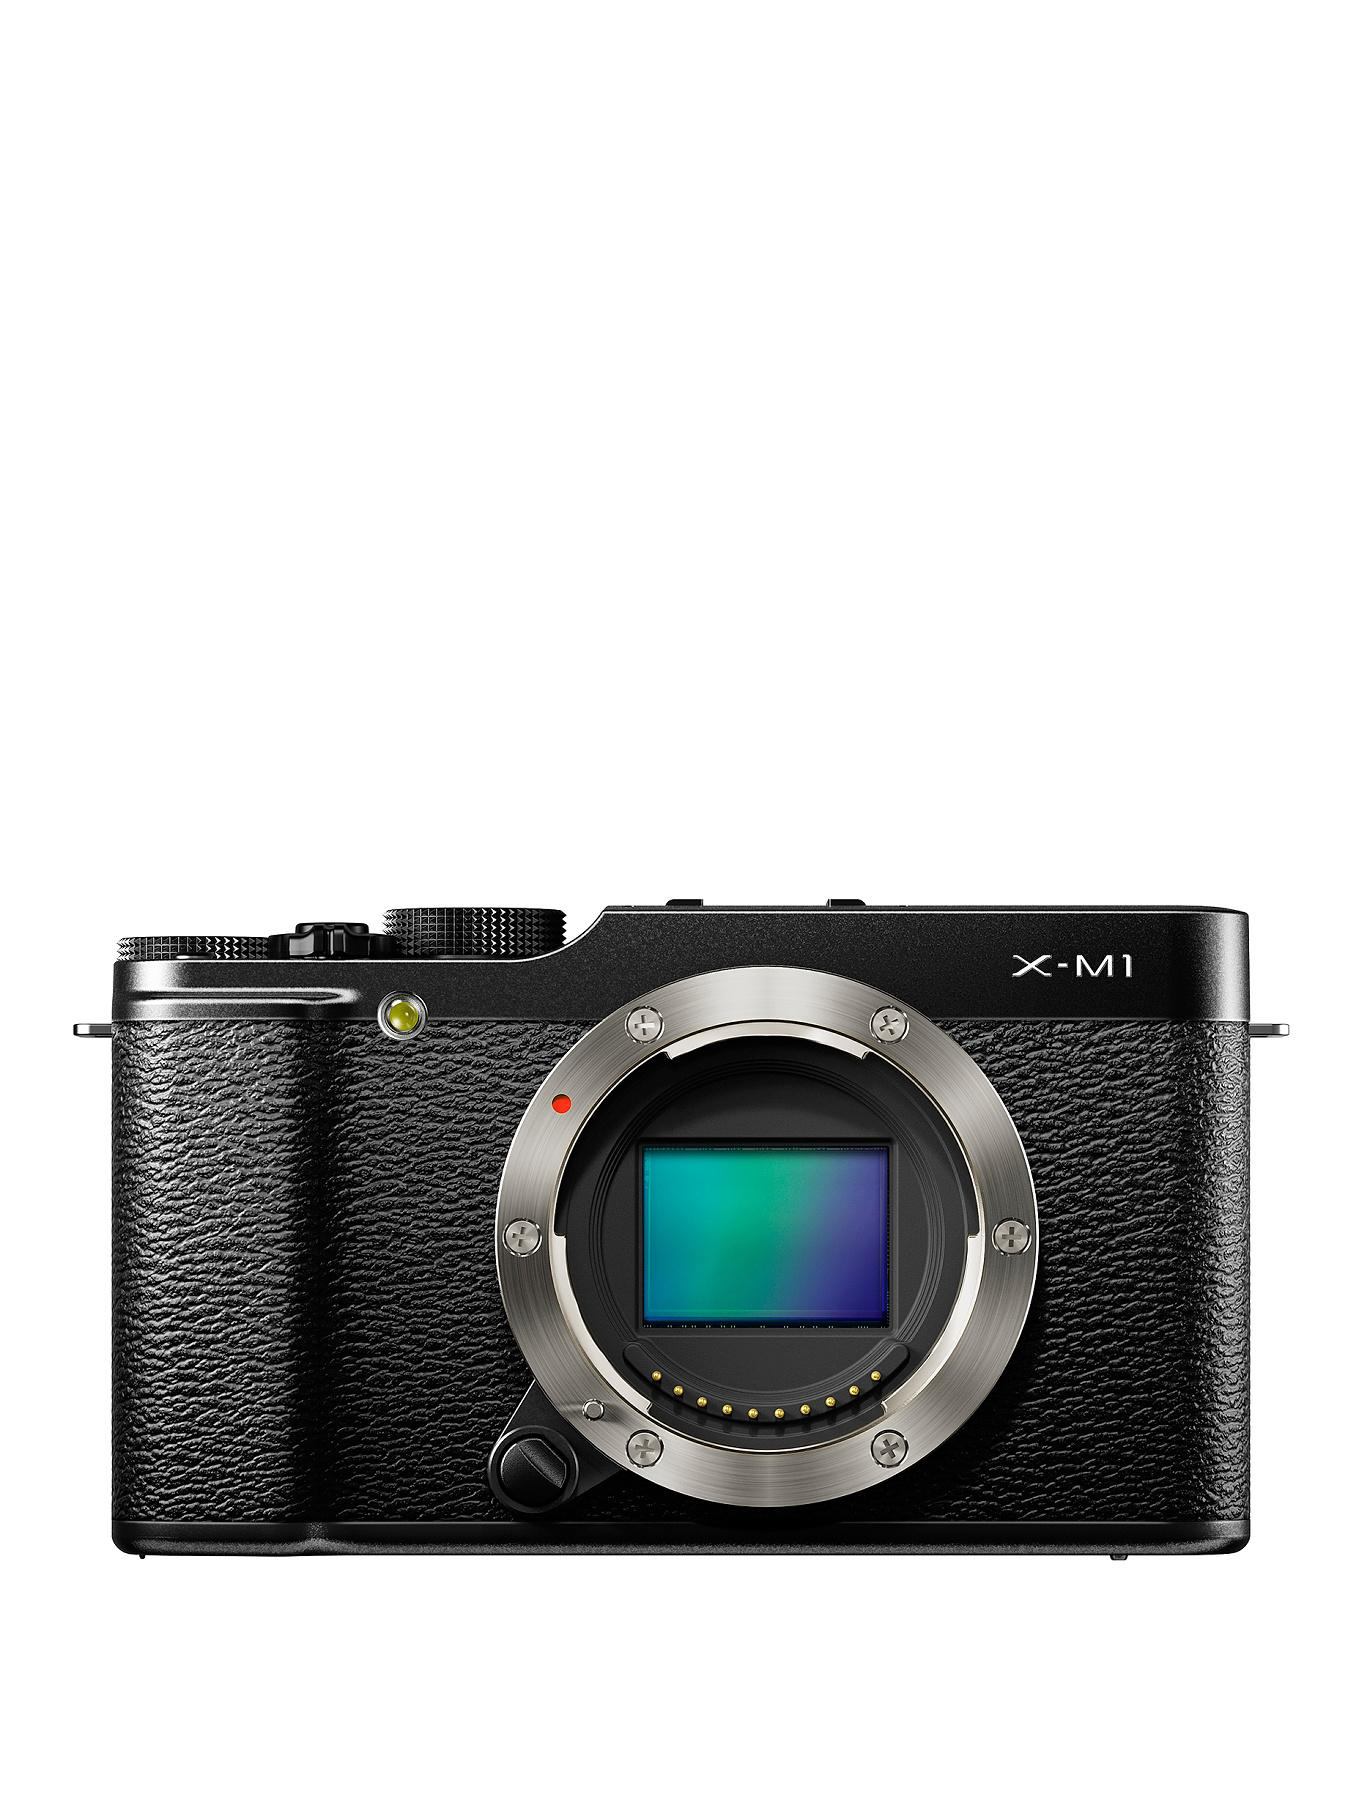 Fuji X-M1 16.3 Megapixel Camera - Body Only - Black, Black